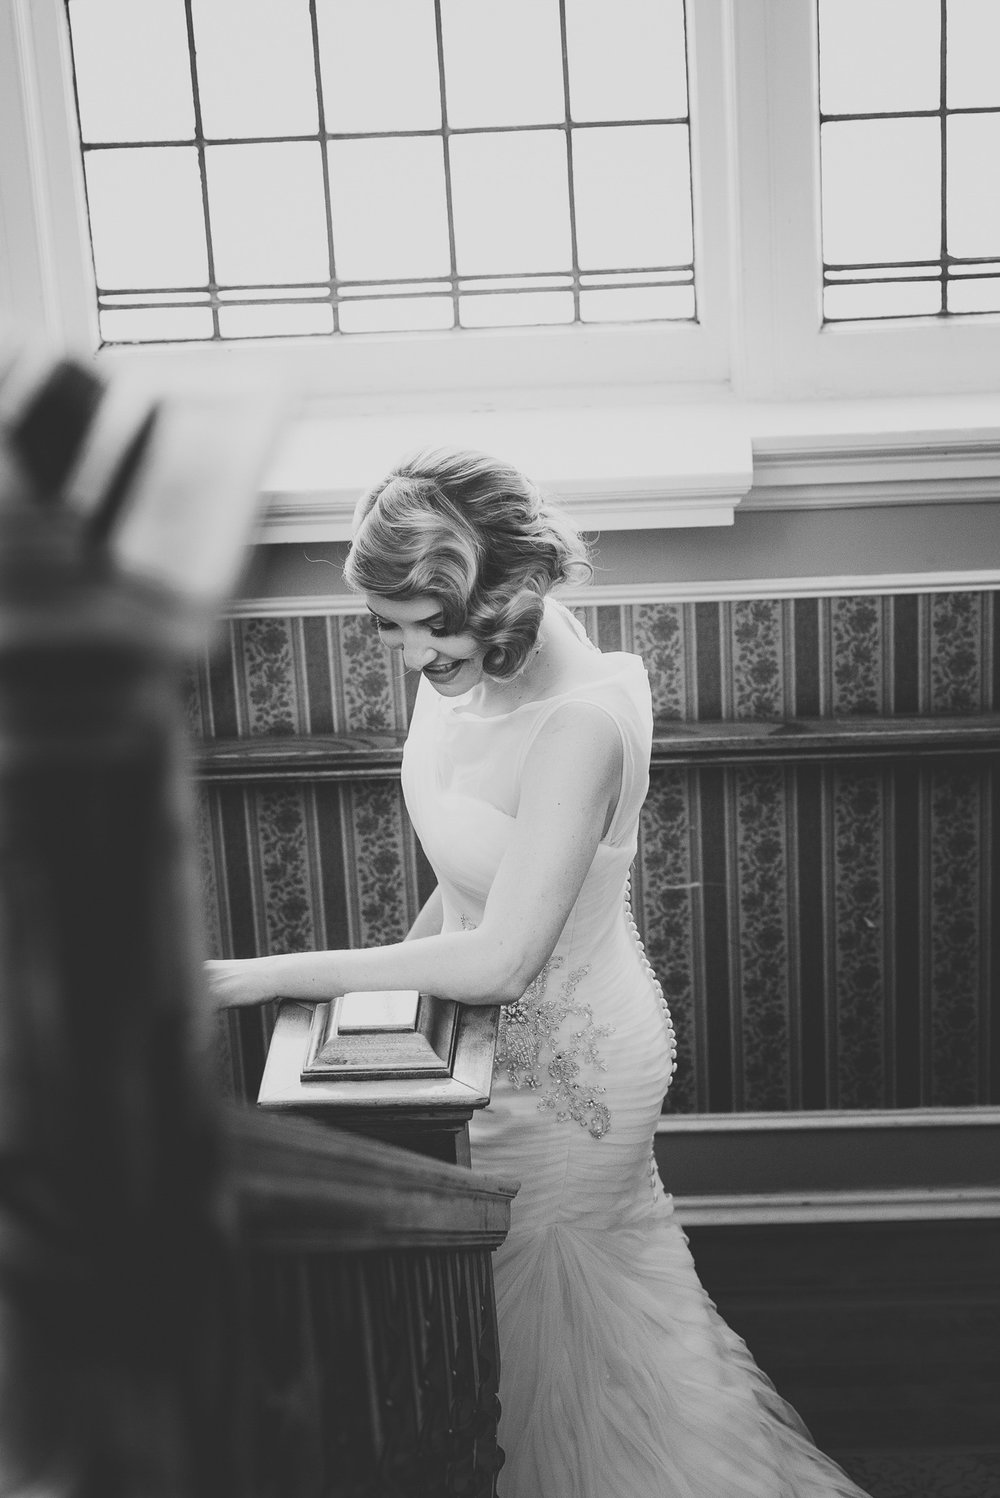 92elopement-photographer-colorado-denver_wedding_photographer_parkside_mansion_wedding_jessie&matt_0542_bw.jpg